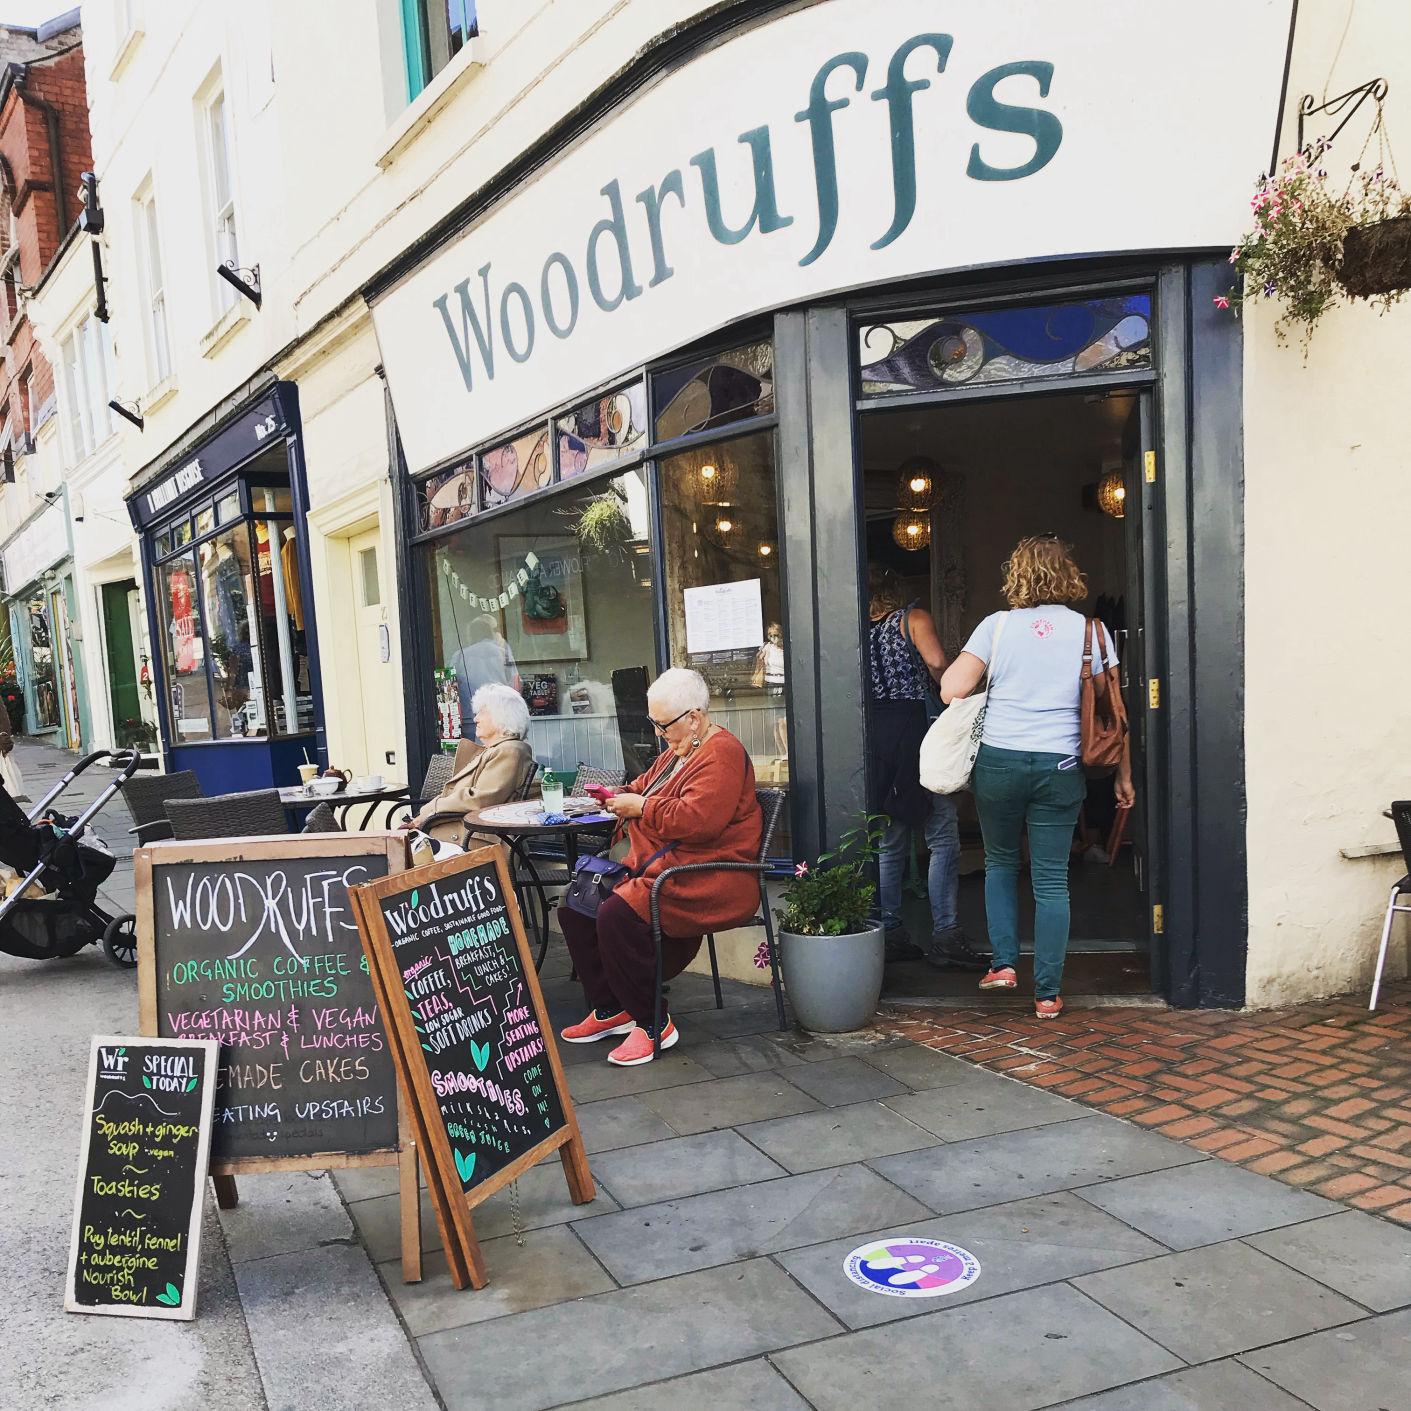 Woodruffs shop front